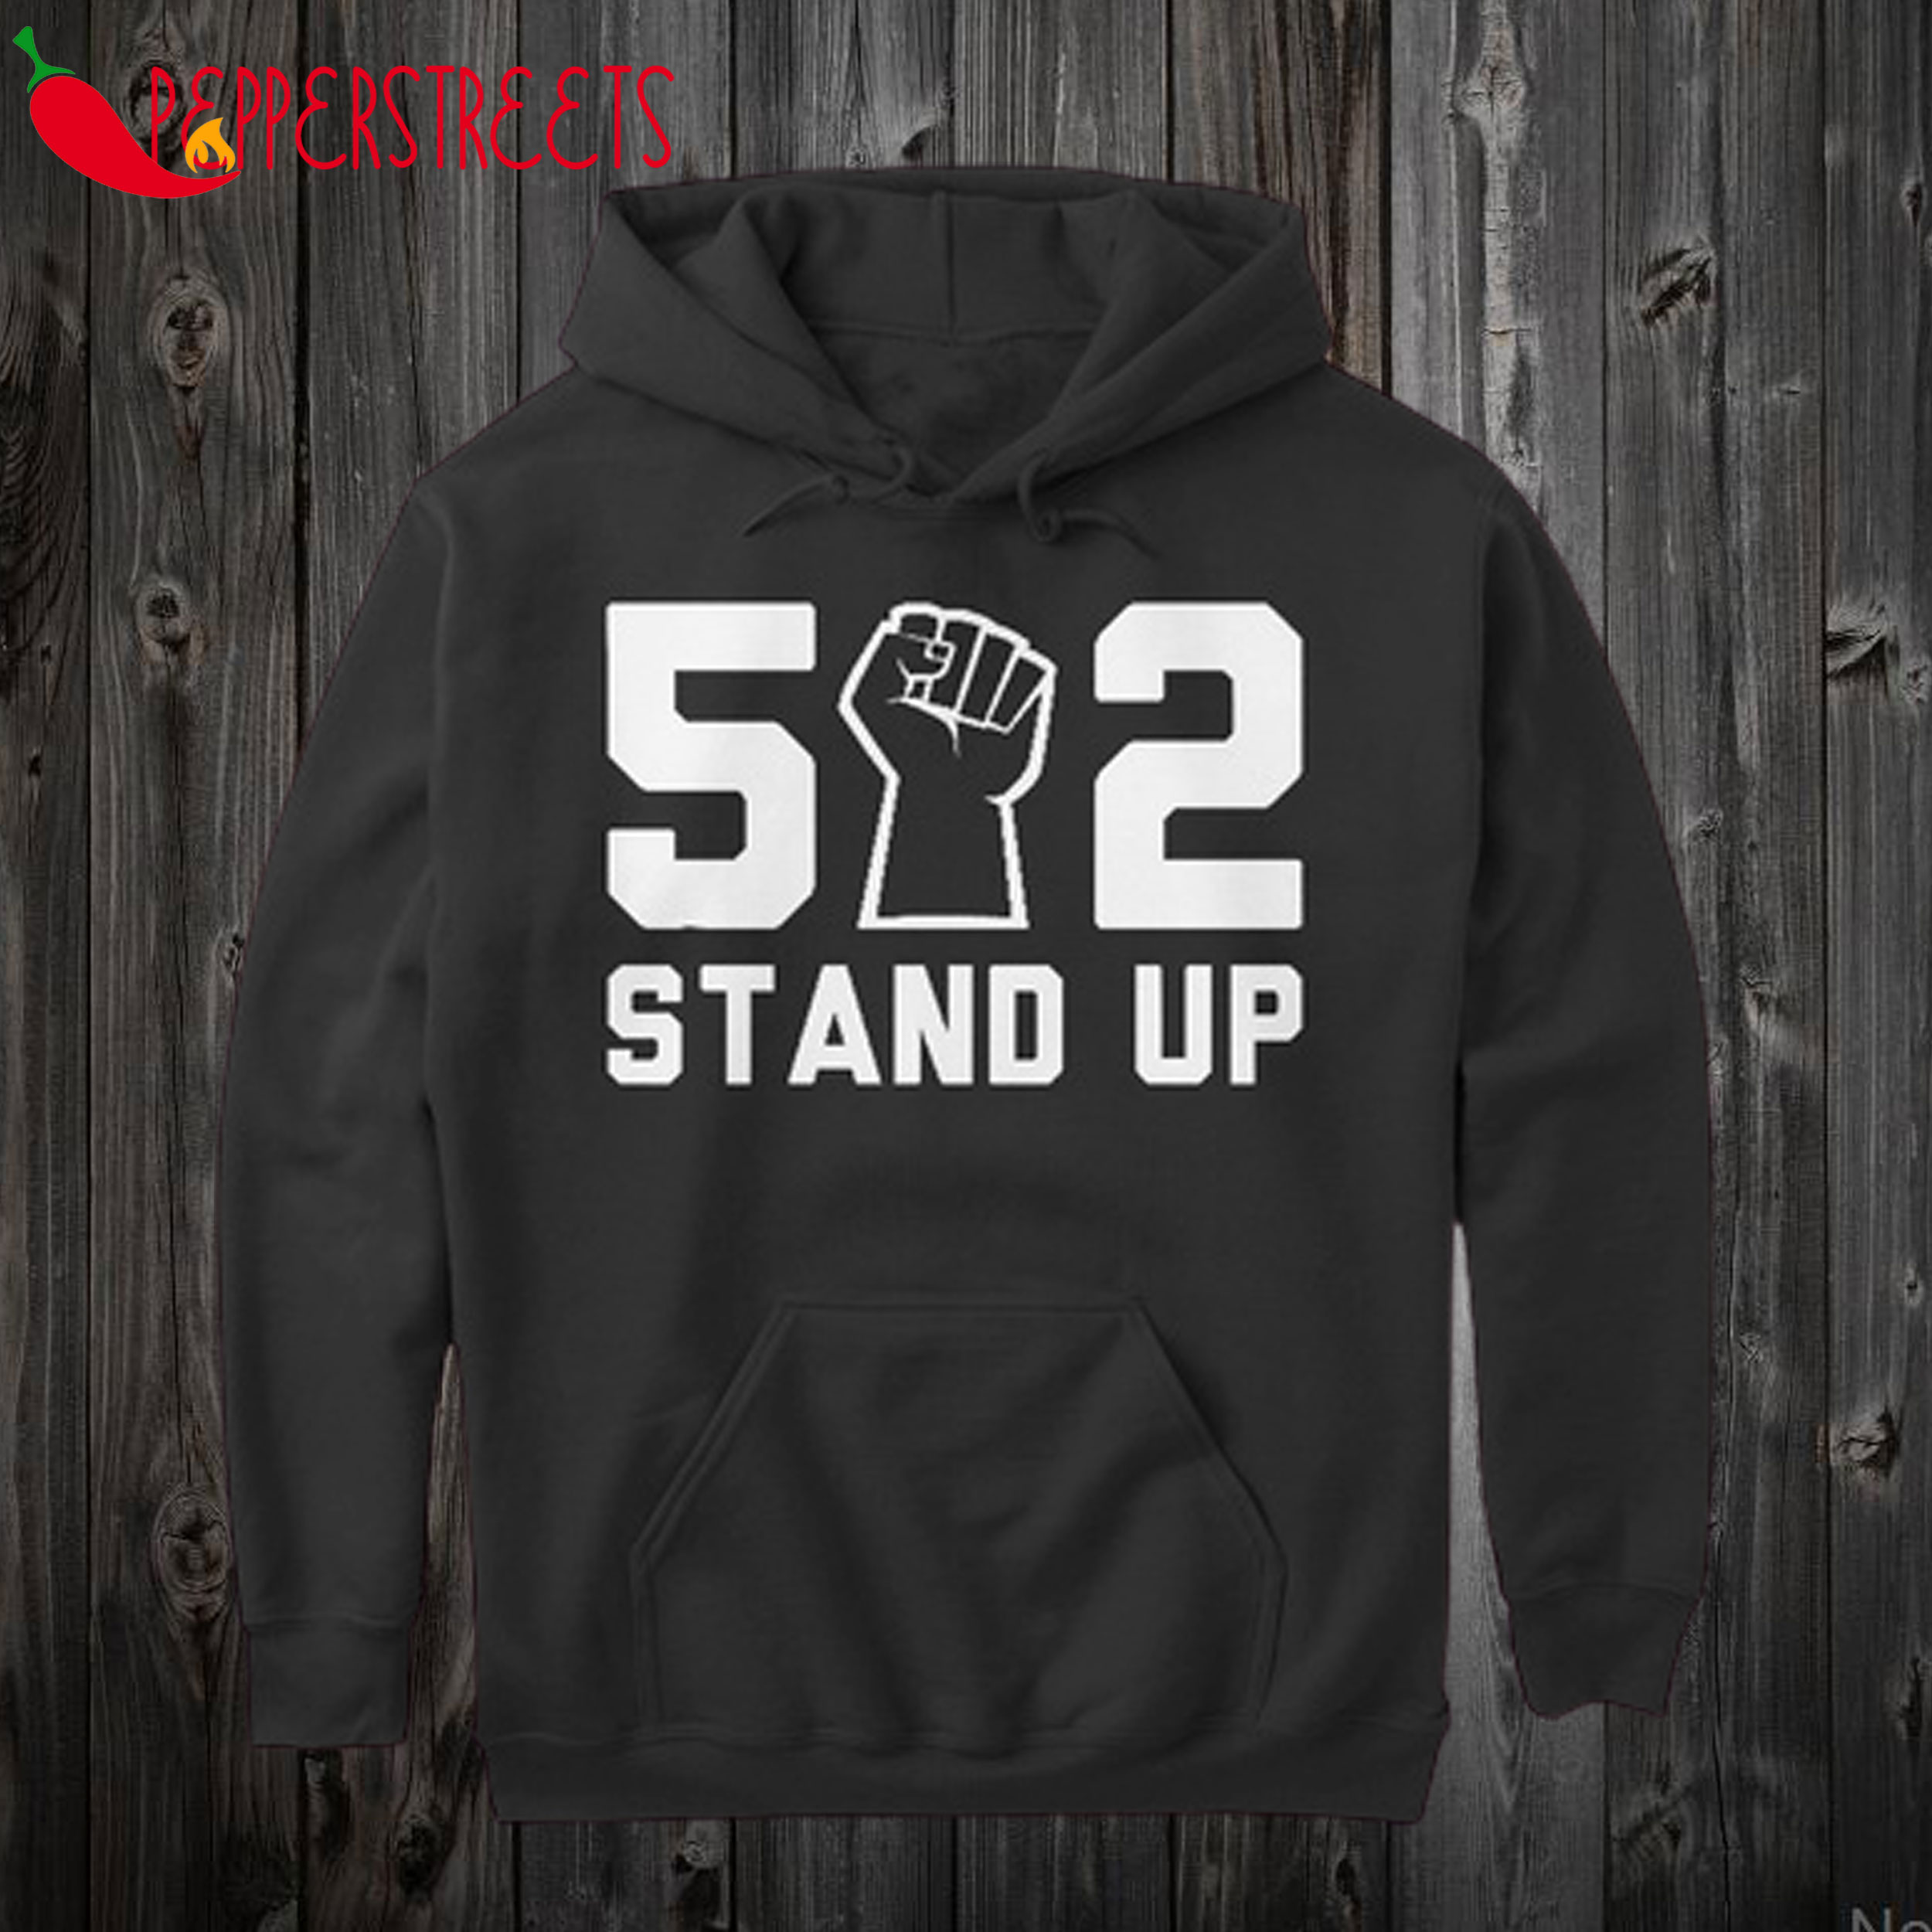 502 Stand Up Shirt BLM Hoodie